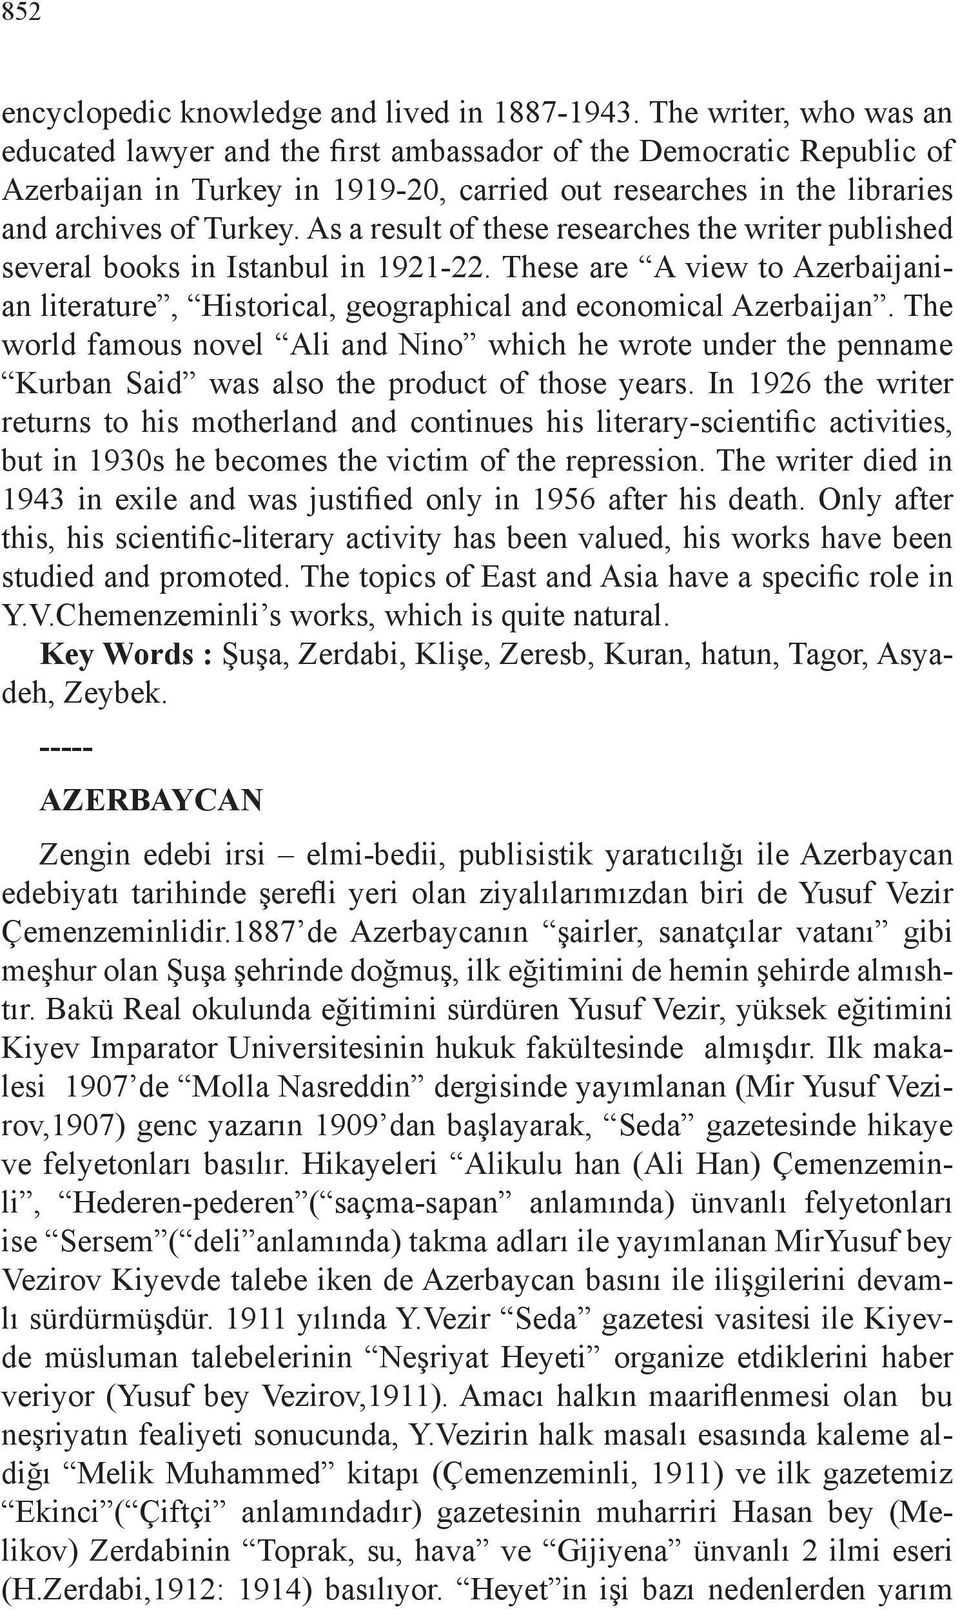 As a result of these researches the writer published several books in Istanbul in 1921-22. These are A view to Azerbaijanian literature, Historical, geographical and economical Azerbaijan.